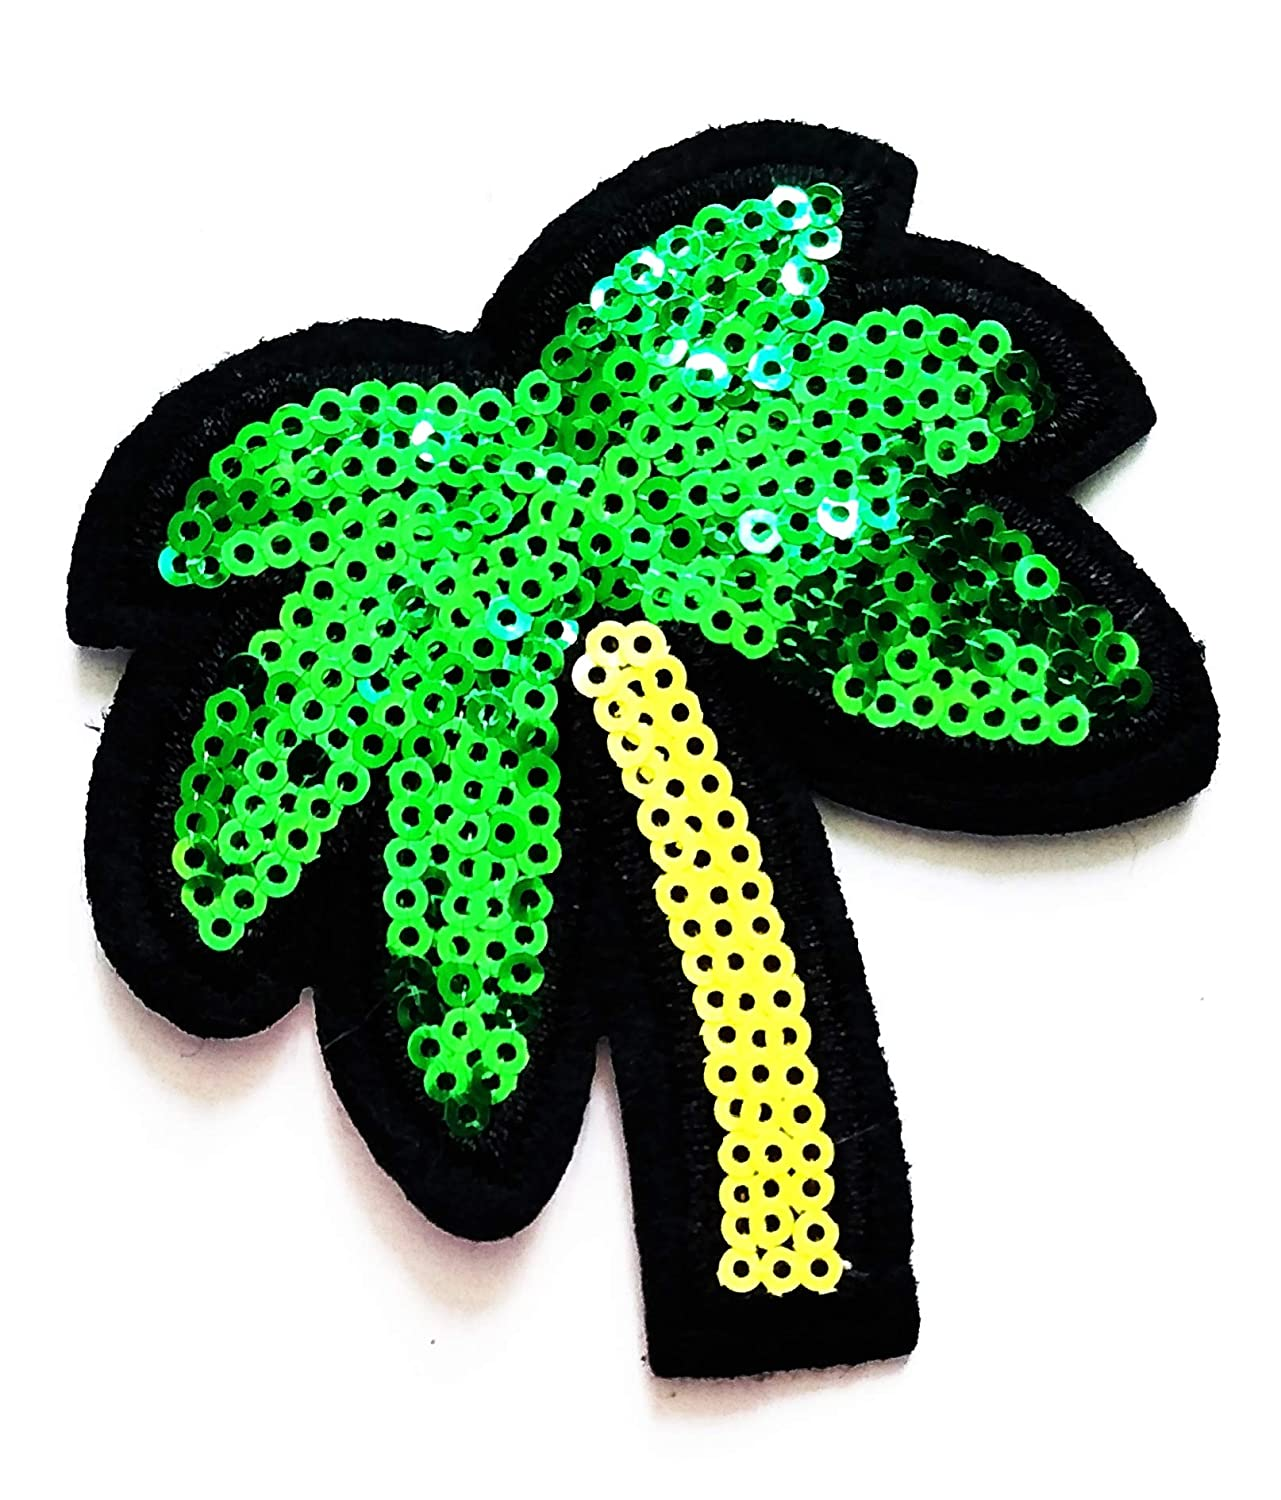 Nipitshop Patches Beautiful Green Coconut Palm Tree Island Summer Beach Hawaii Sequin Patch Embroidered Iron On Patch for Clothes Backpacks T-Shirt Jeans Skirt Vests Scarf Hat Bag